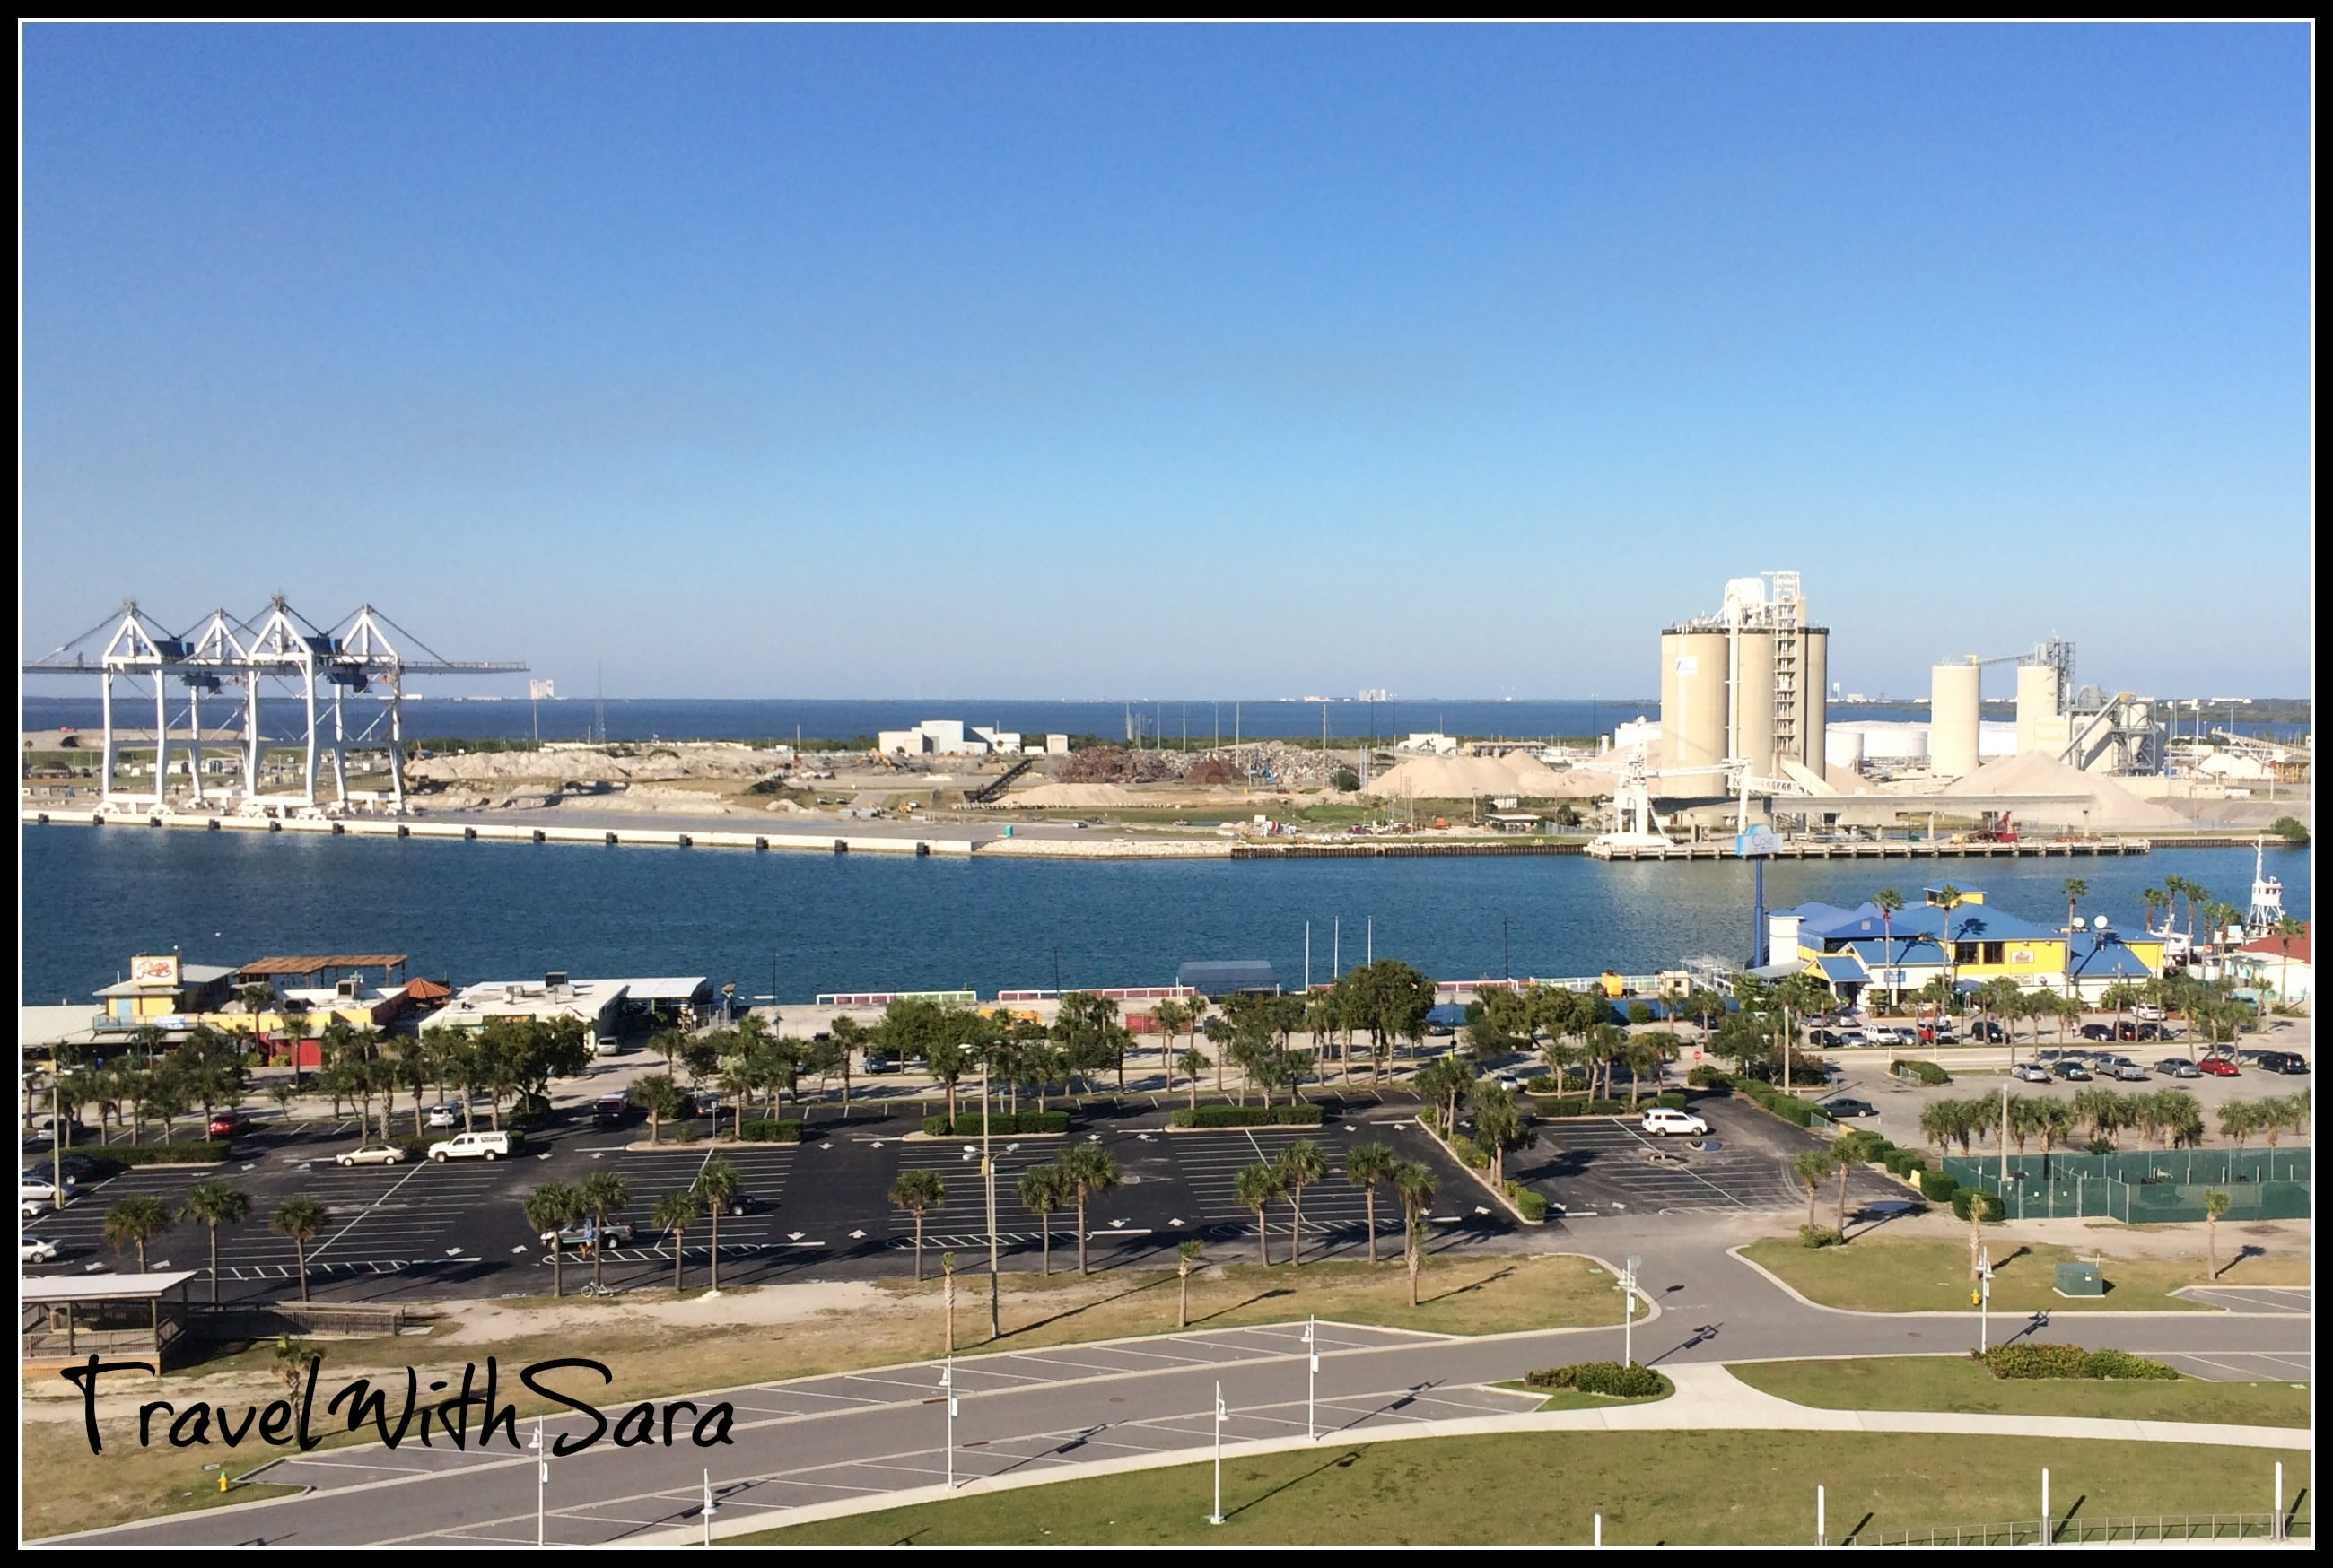 A Must See Before Your Cruise Departs Port Canaveral: Exploration Tower